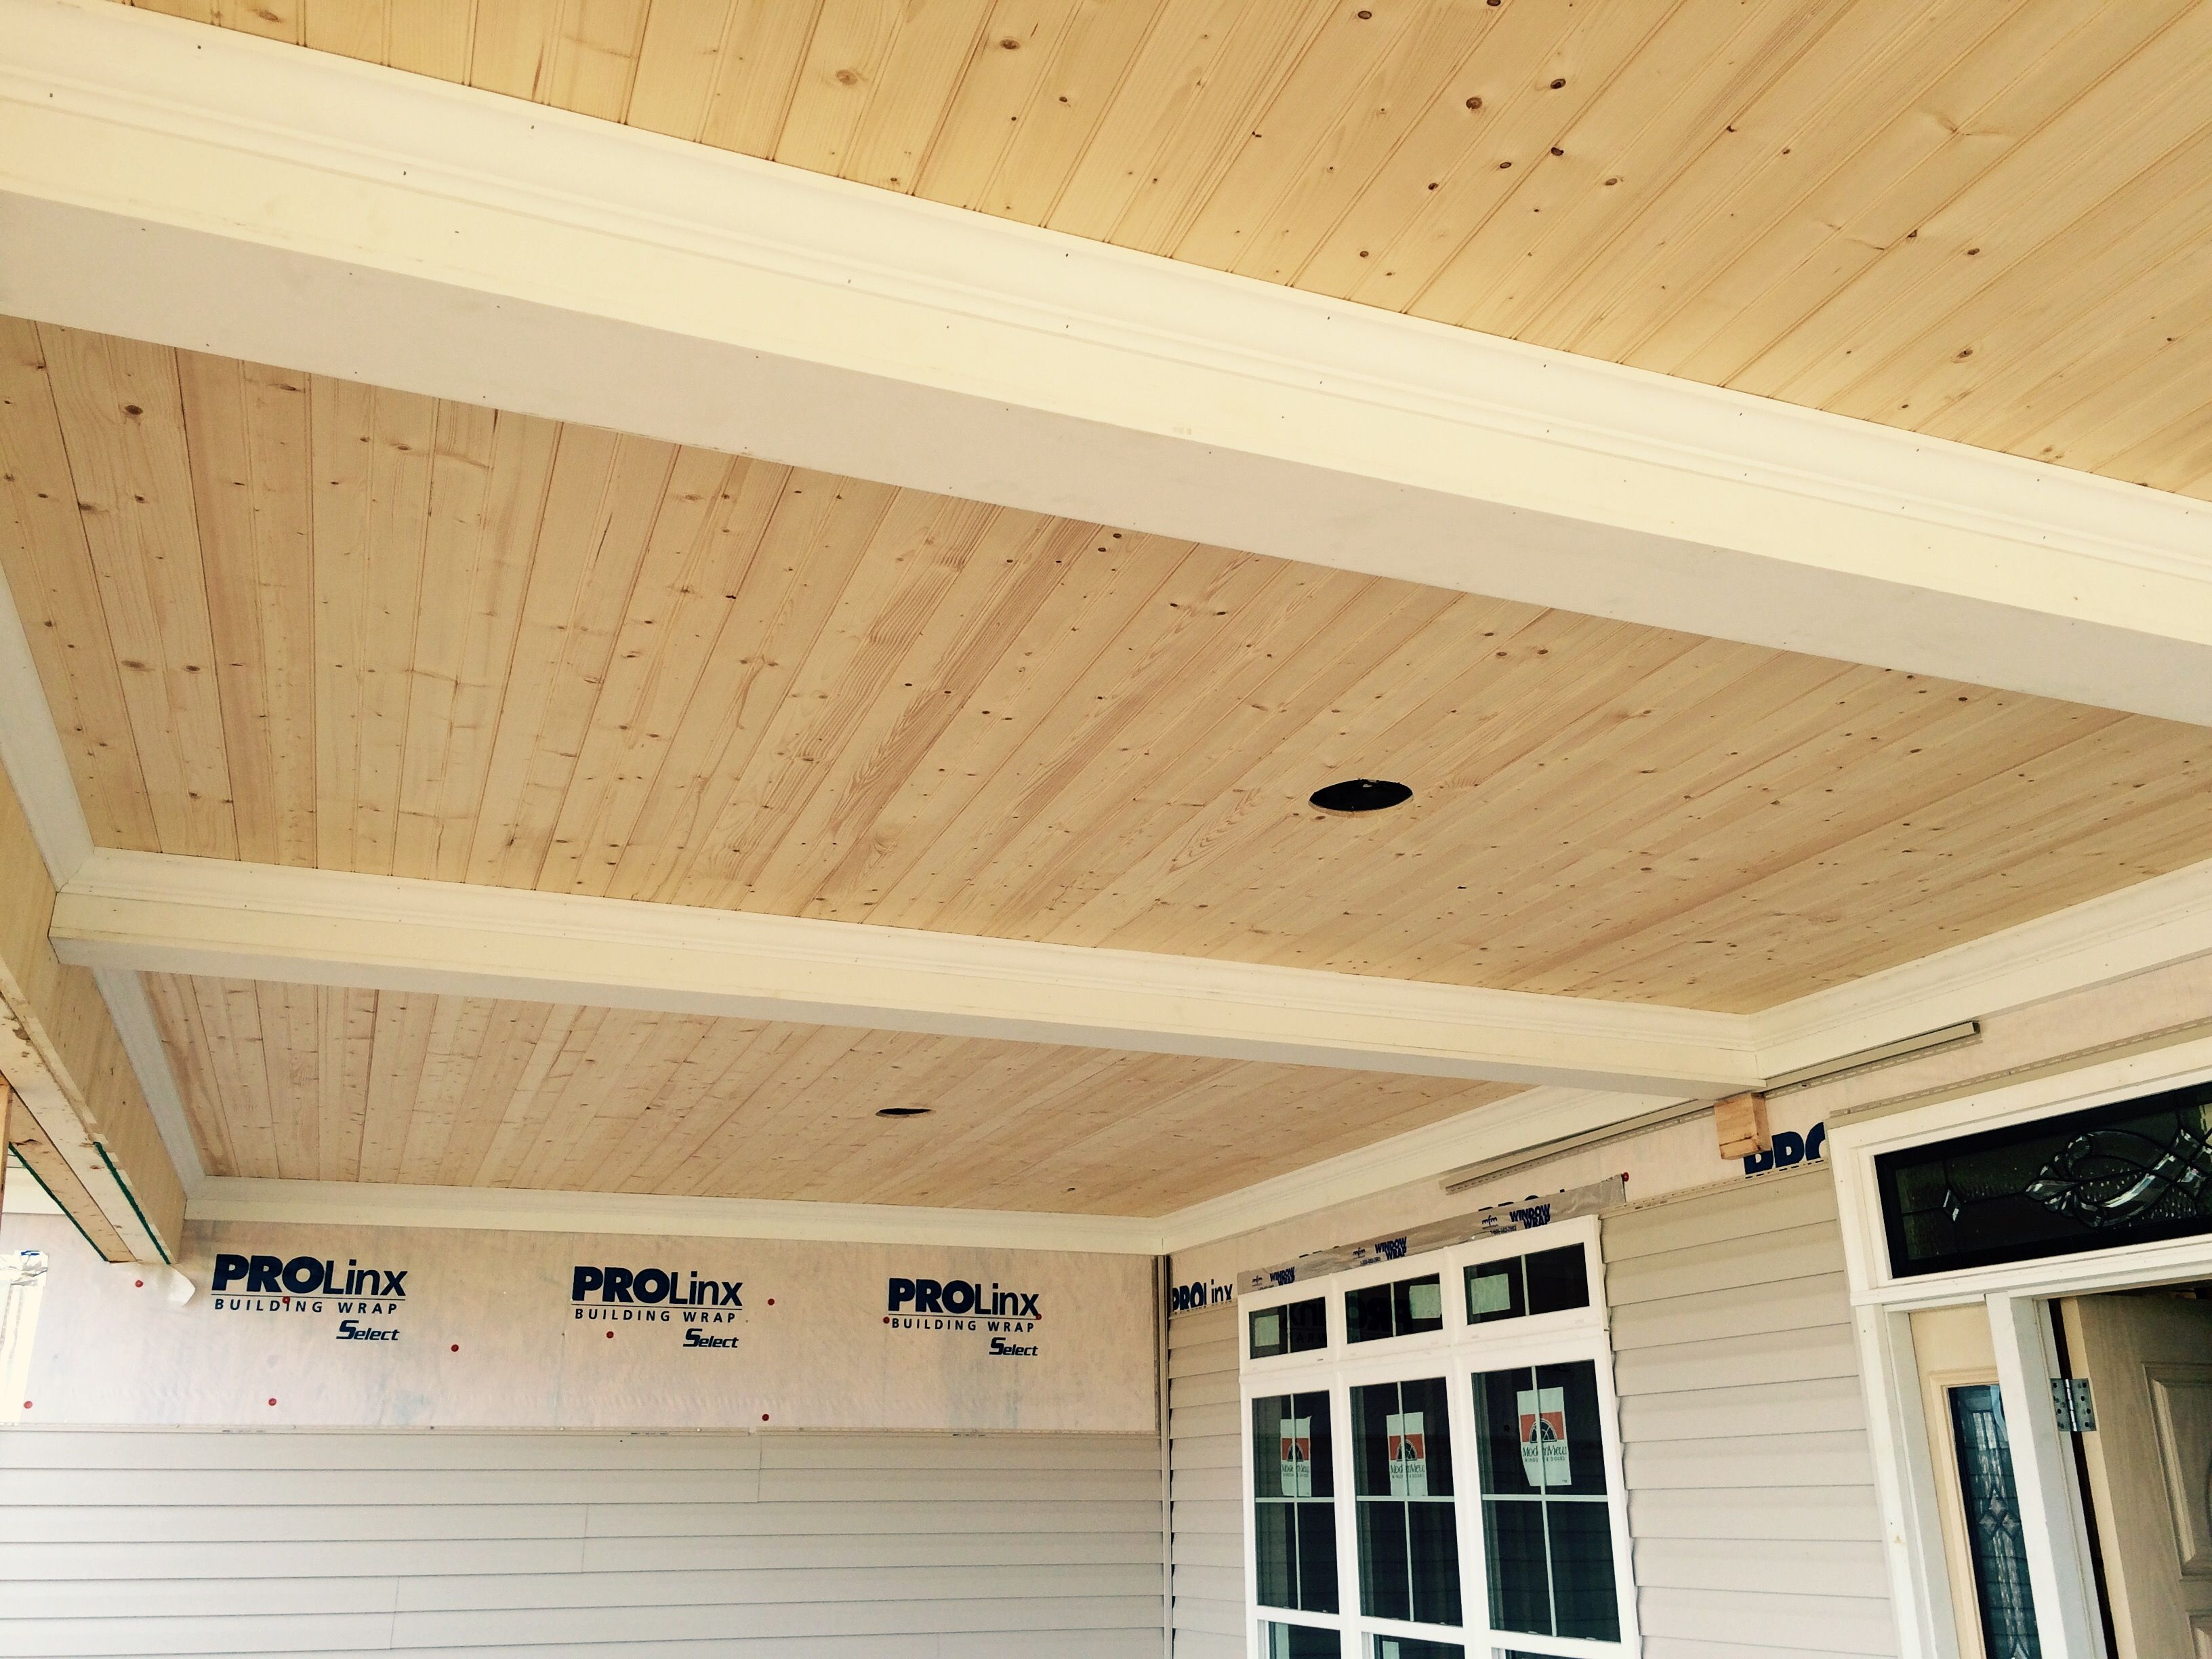 1x6 Knotty Pine T G On A Porch Ceiling Installed By Moffit Construction On A Mayhew Builders Home Porch Ceiling Lights Best Flooring Ceiling Lights